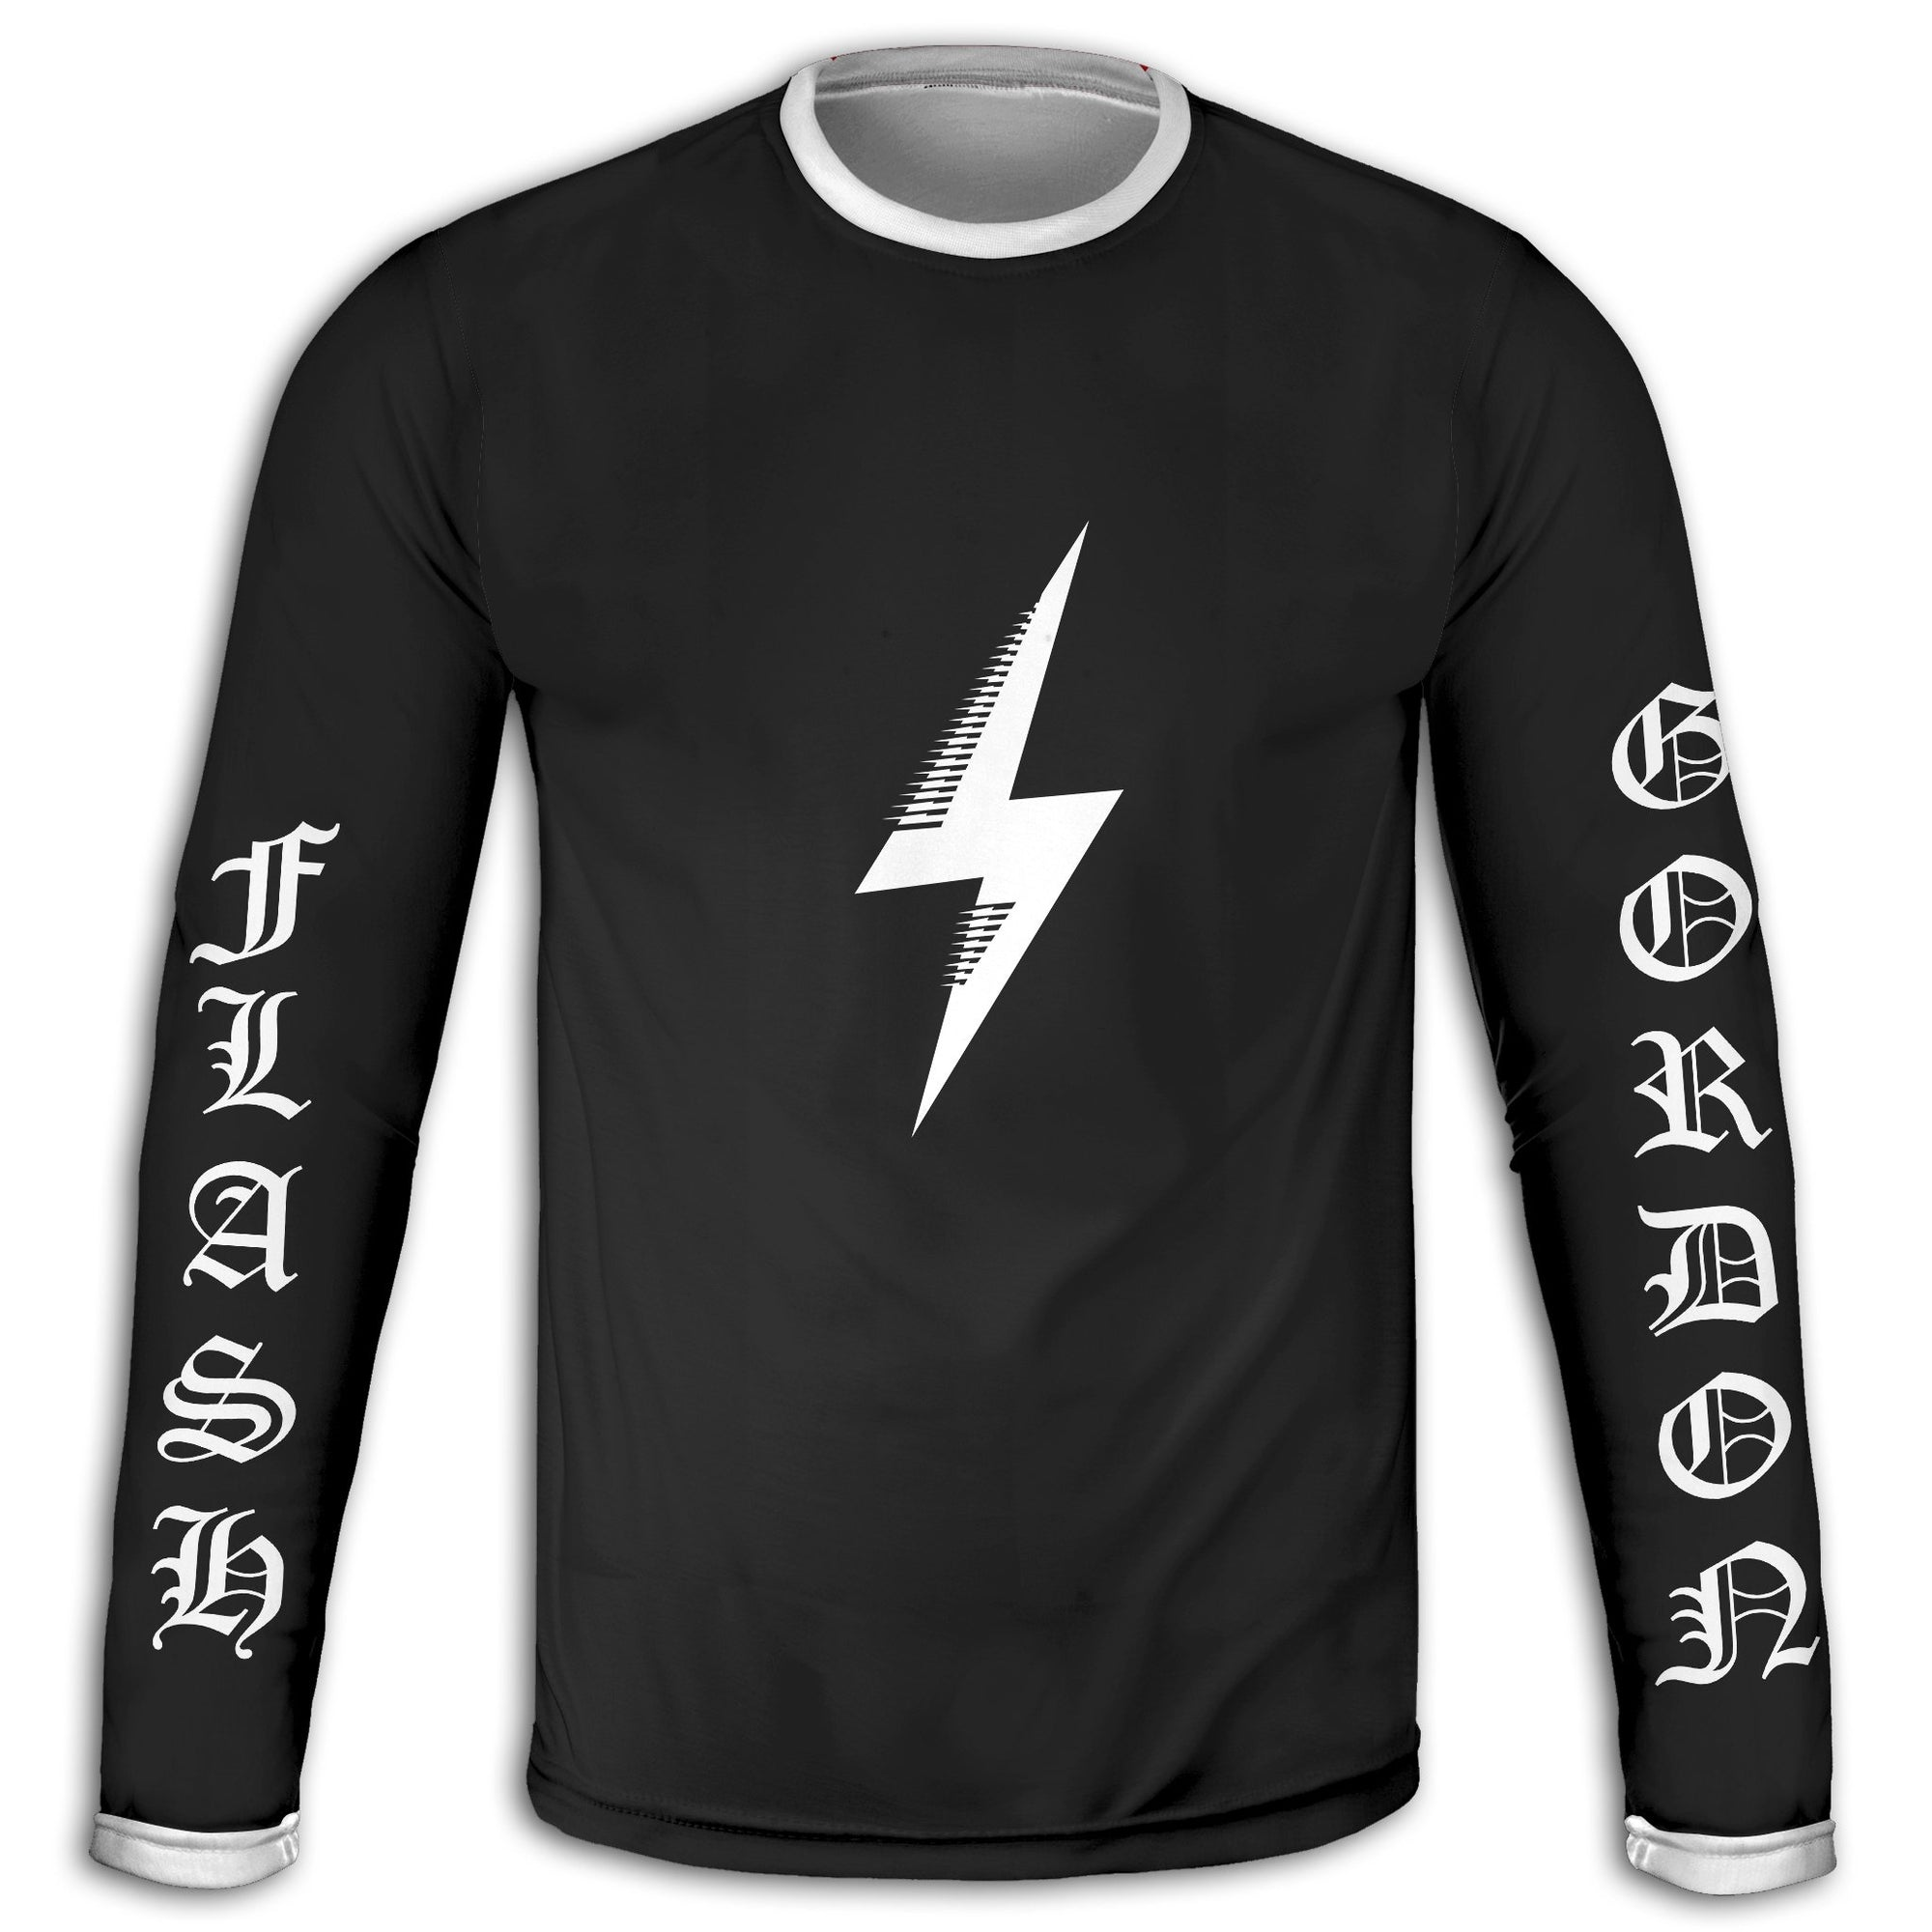 Ambition Long Sleeve Tee | flashgordonshop.com